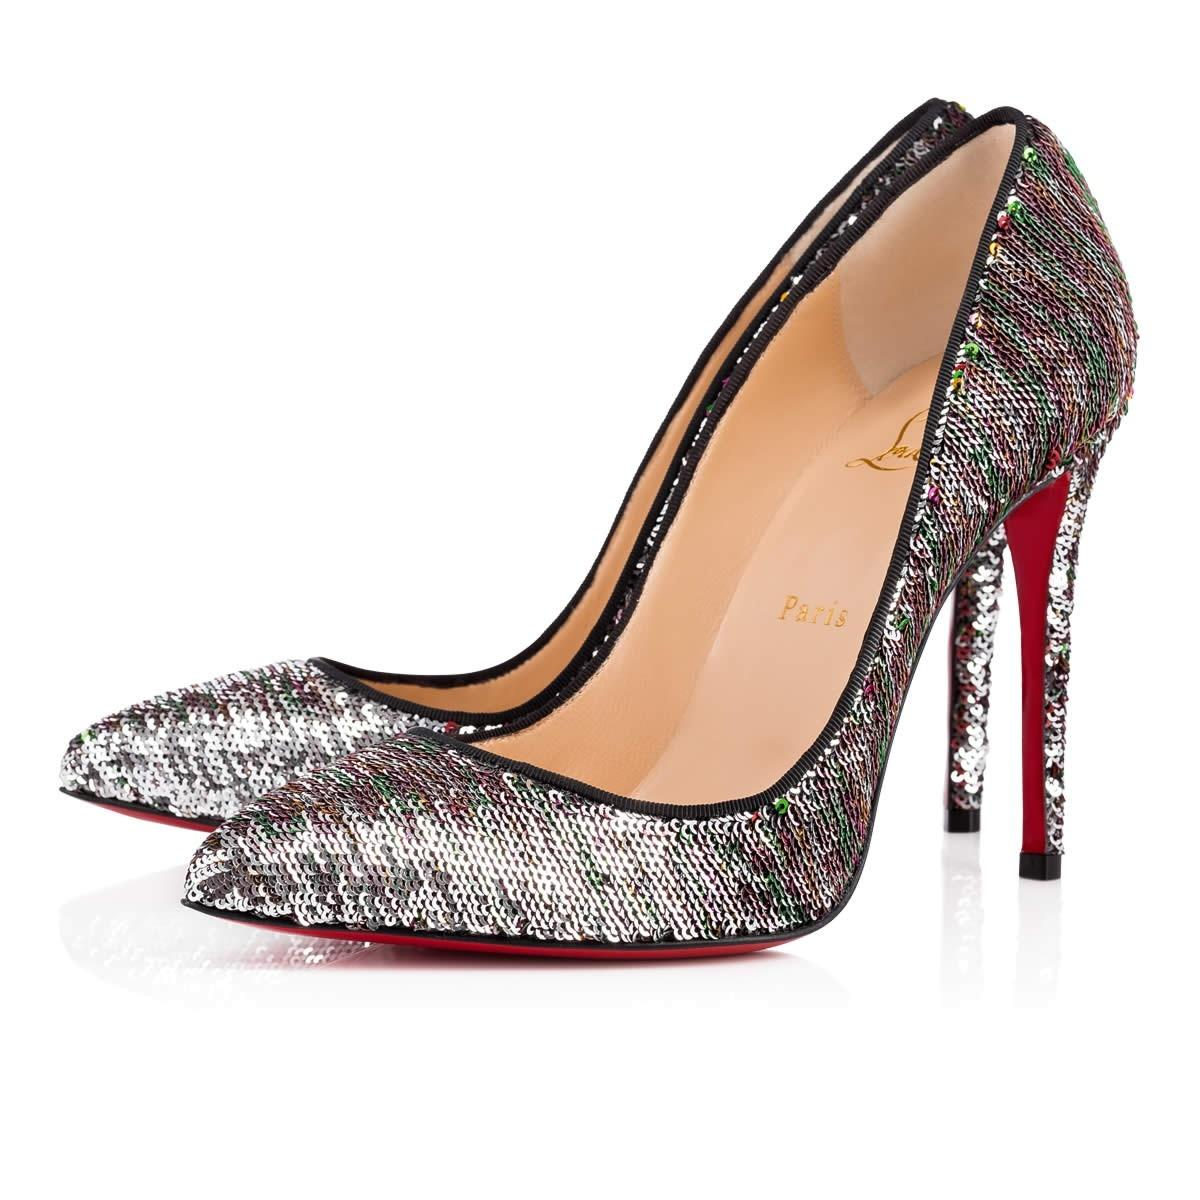 Christian Louboutin Multicolored - Pigalle Follies 100mm Sequined Pumps Size EU 36 (Approx. US 6) Regular (M, B)